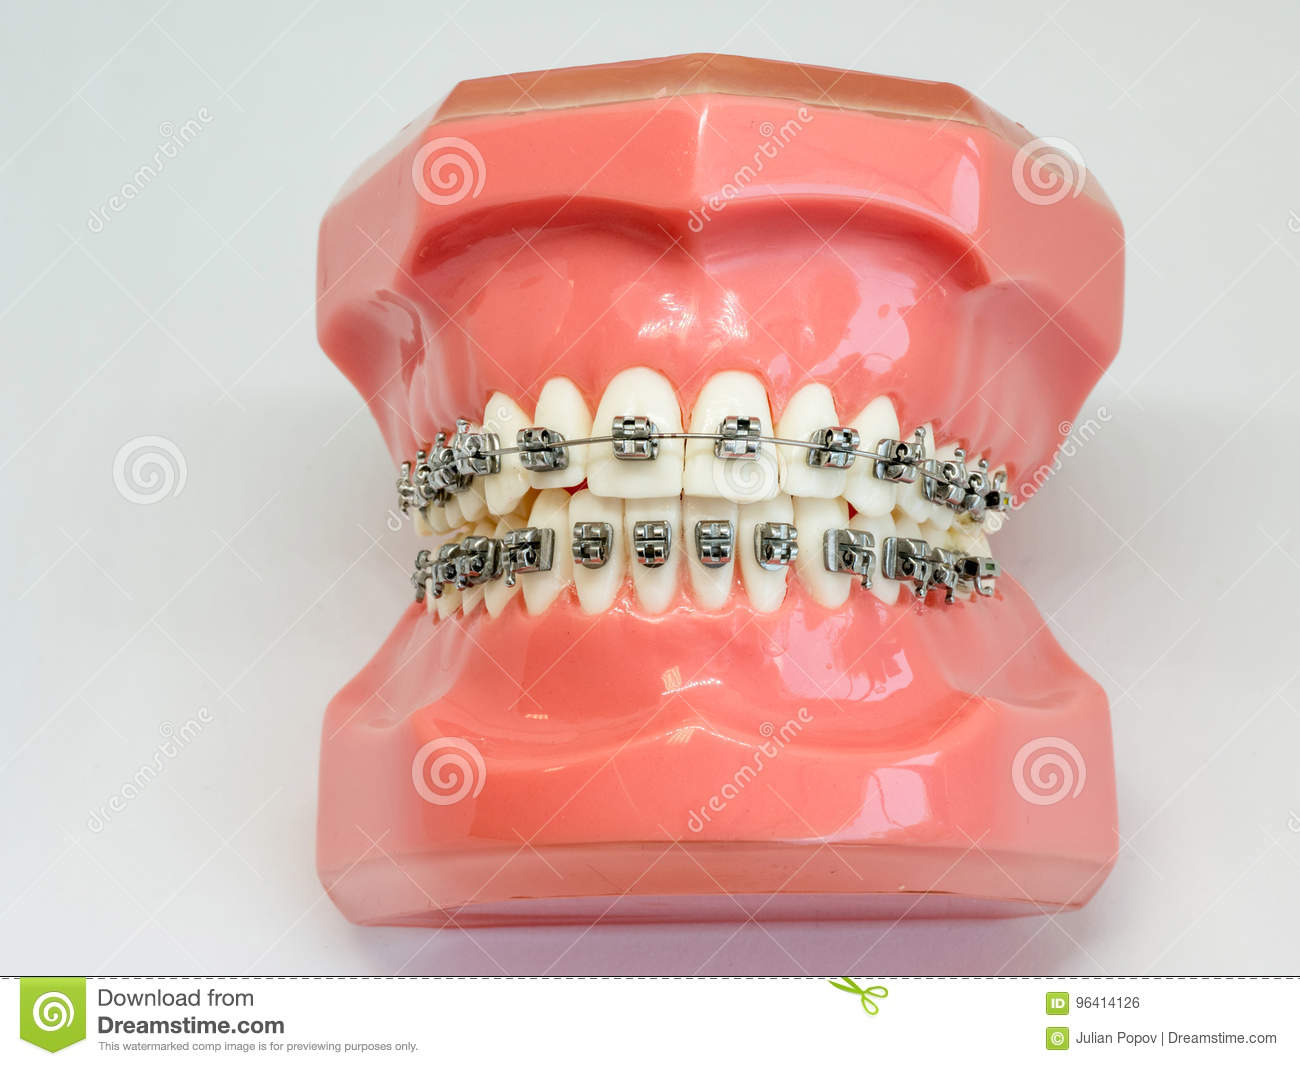 Cool Artificial Model Of Human Jaw With Wire Colorful Braces Attached Wiring Digital Resources Cettecompassionincorg